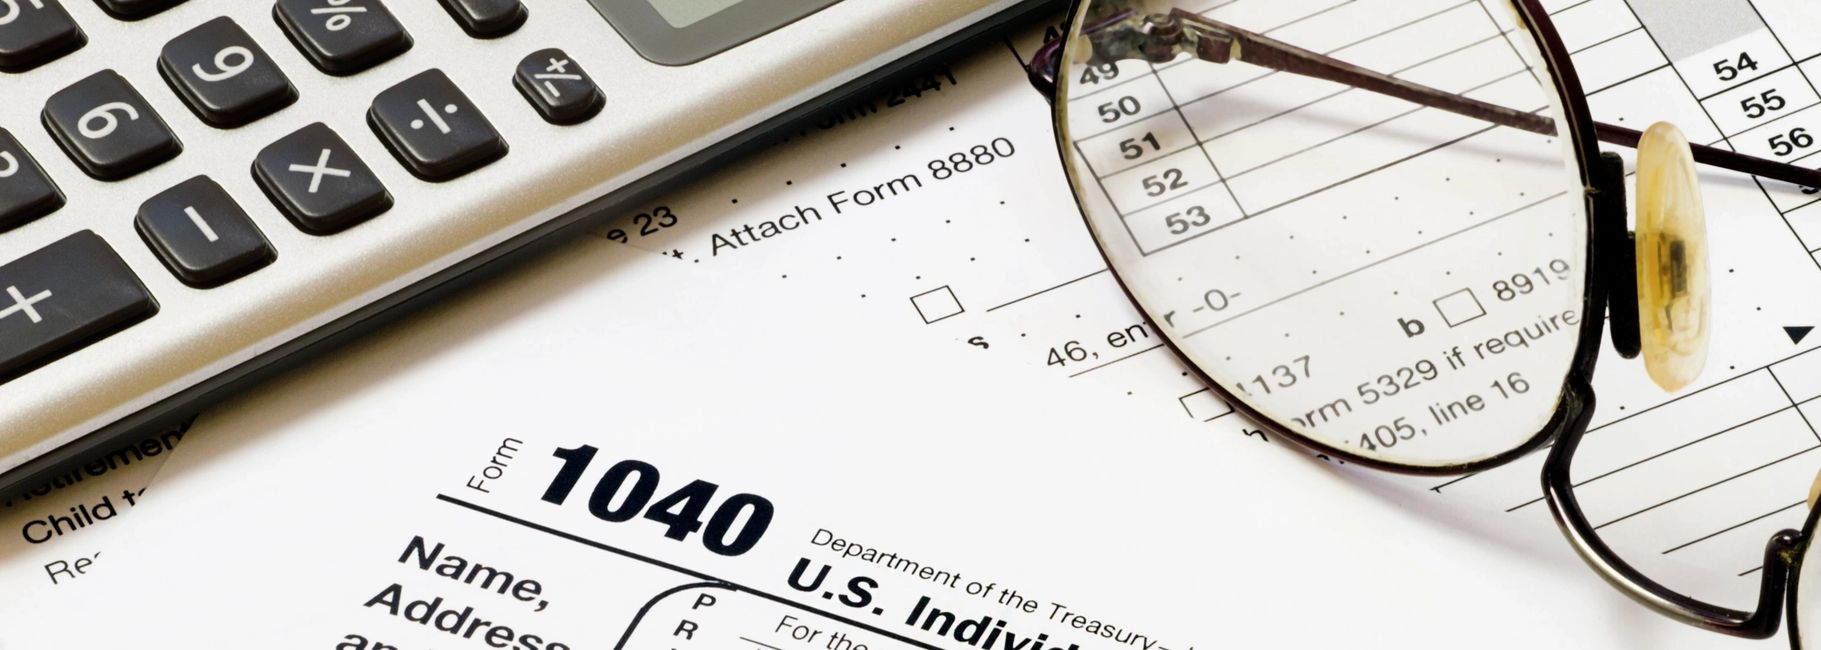 Business Income tax preparation, tax service in Schaumburg IL and the Chicago area